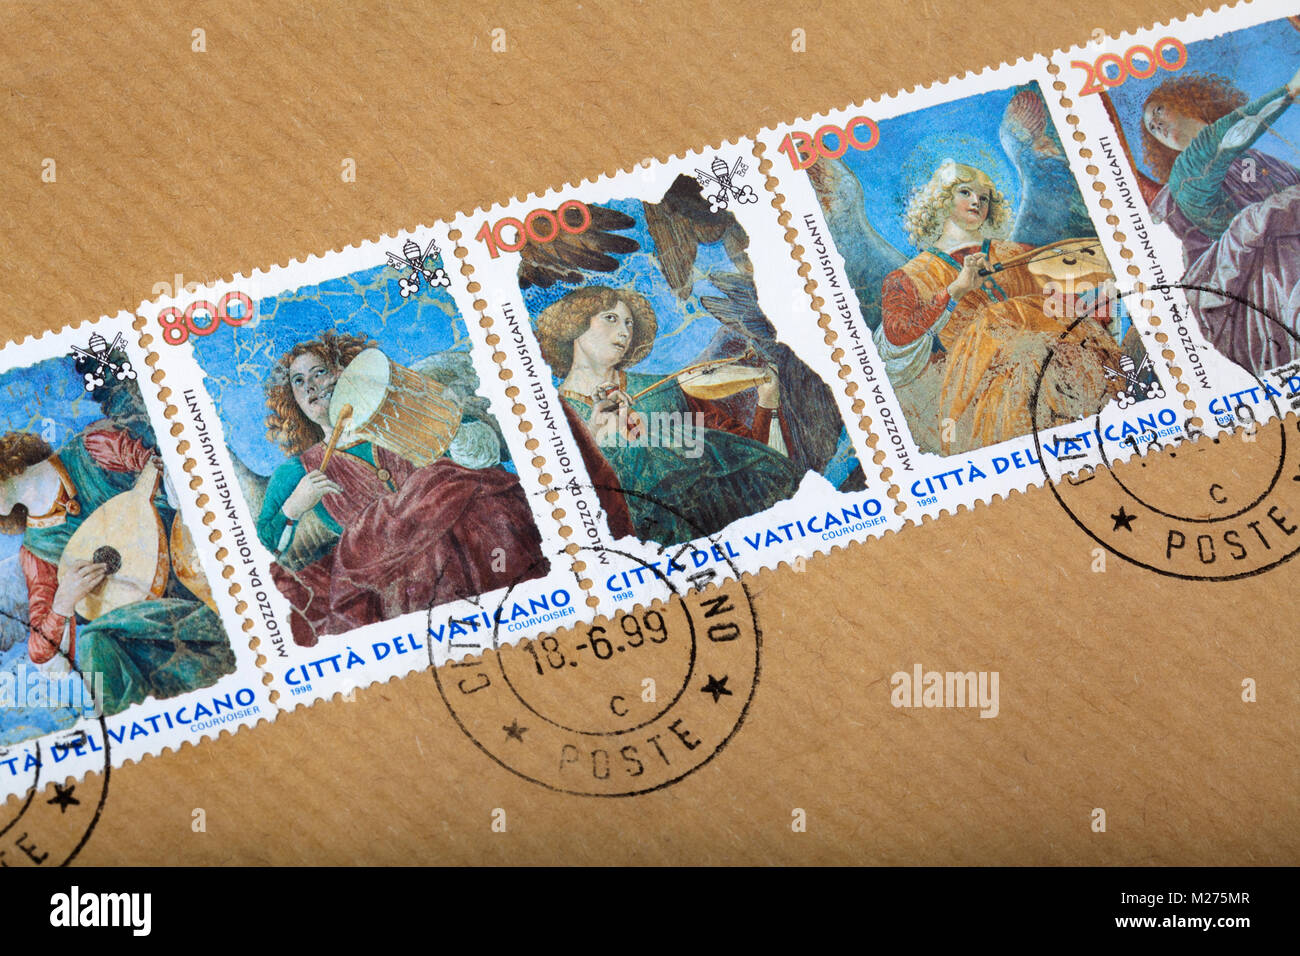 Stamps from the Vatican on a letter, Stamped, Vatican, Italy, Europe, Gestempelte Briefmarken aus dem Vatikan, musizierende - Stock Image